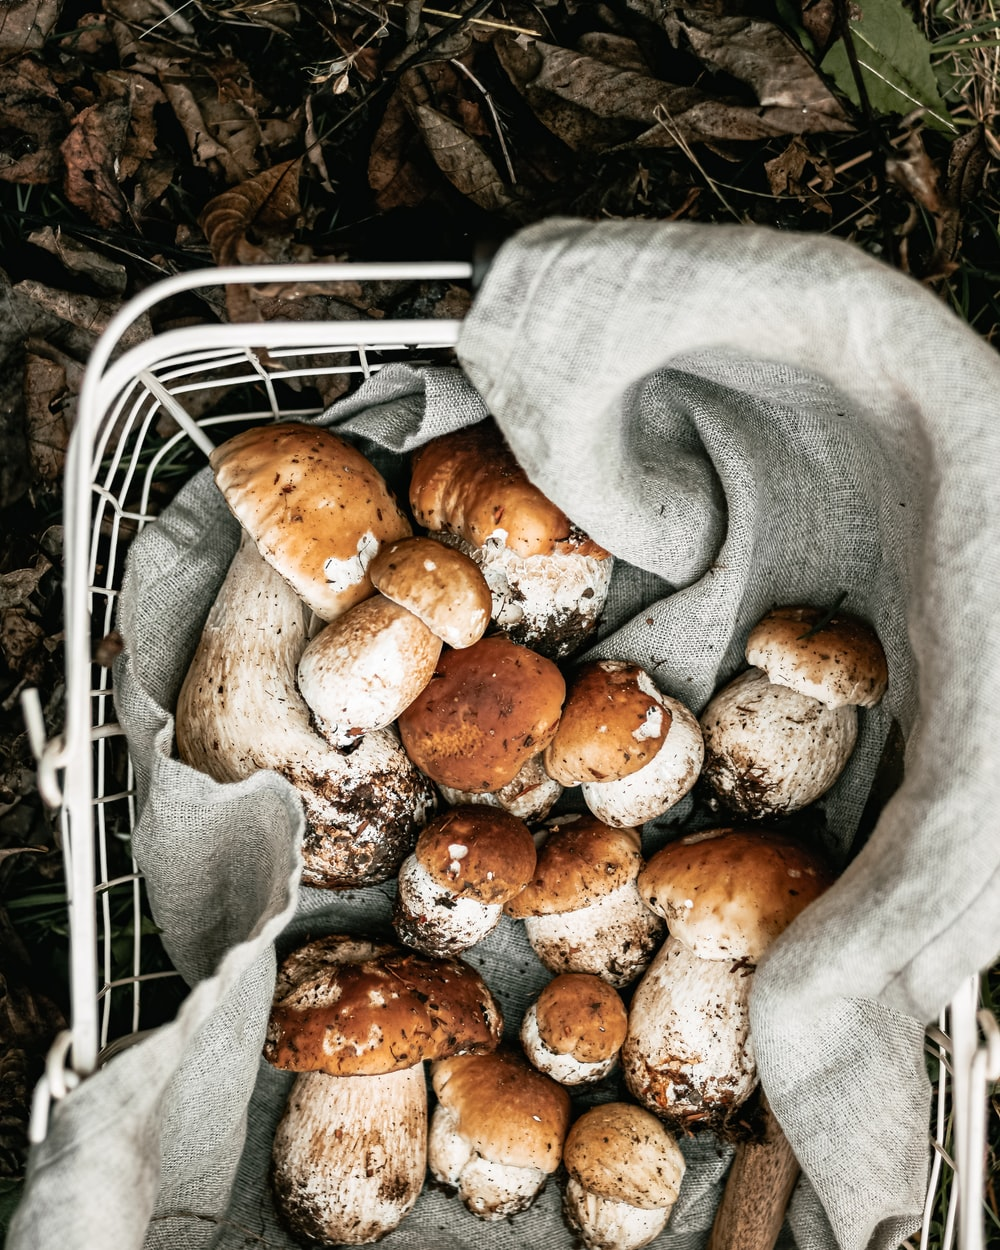 brown and white mushrooms on white metal rack